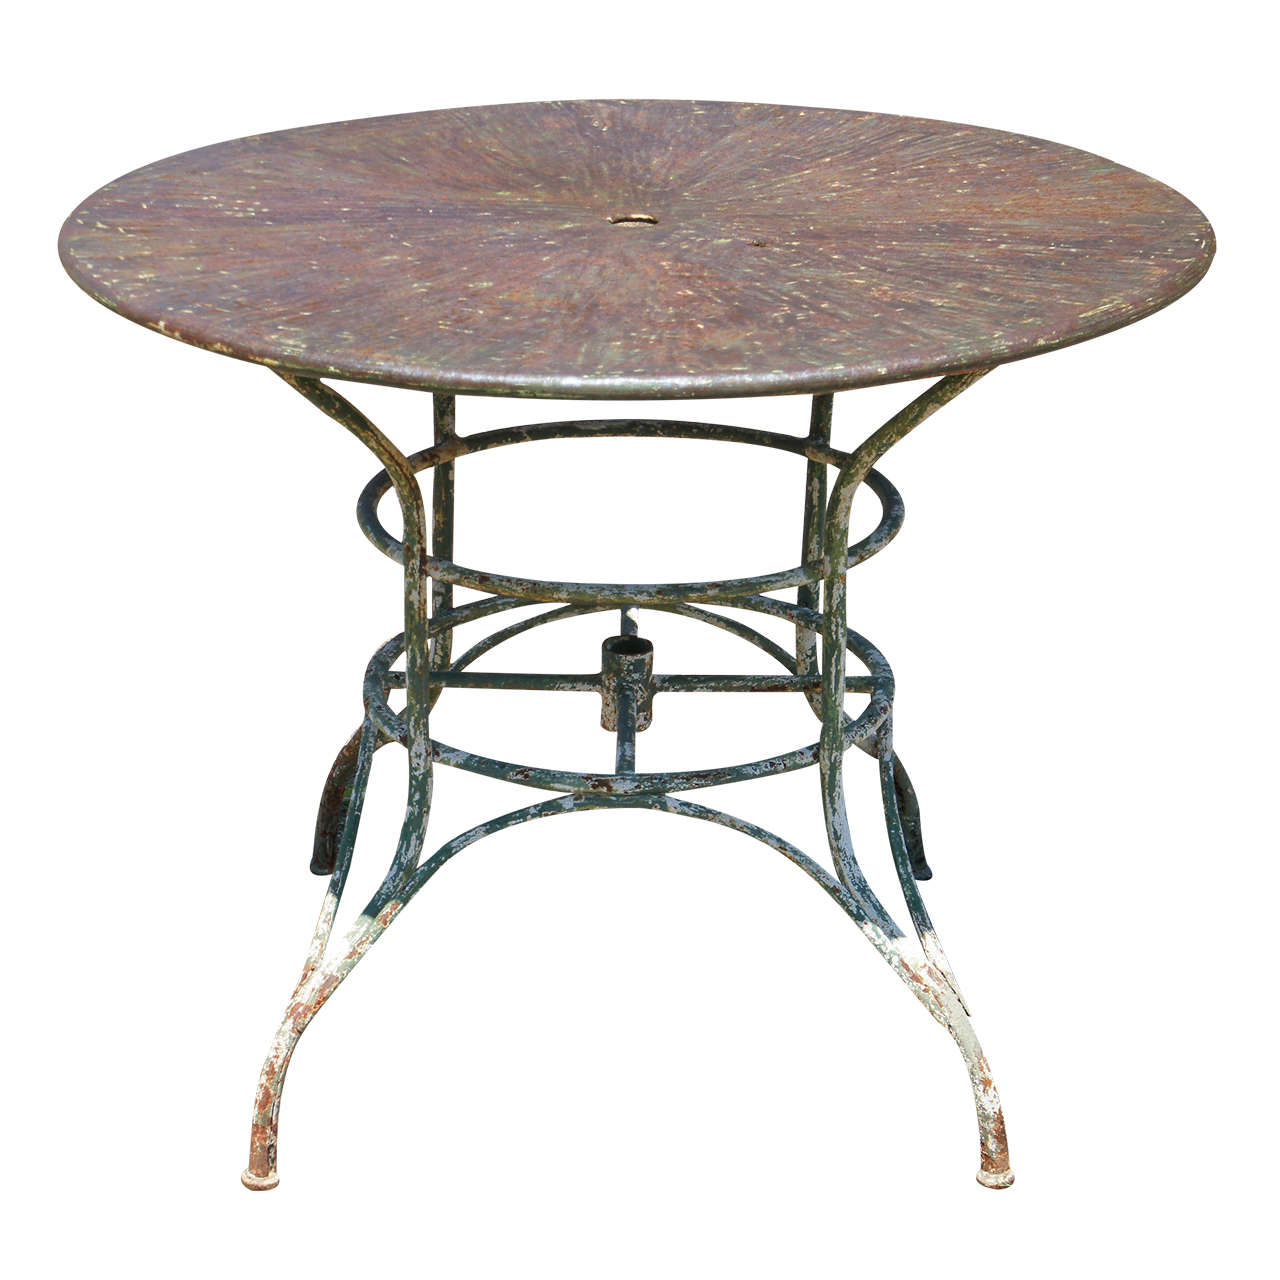 Round Outdoor Metal Table Intended Umbrella Round Metal Garden Table For Sale At 1stdibs